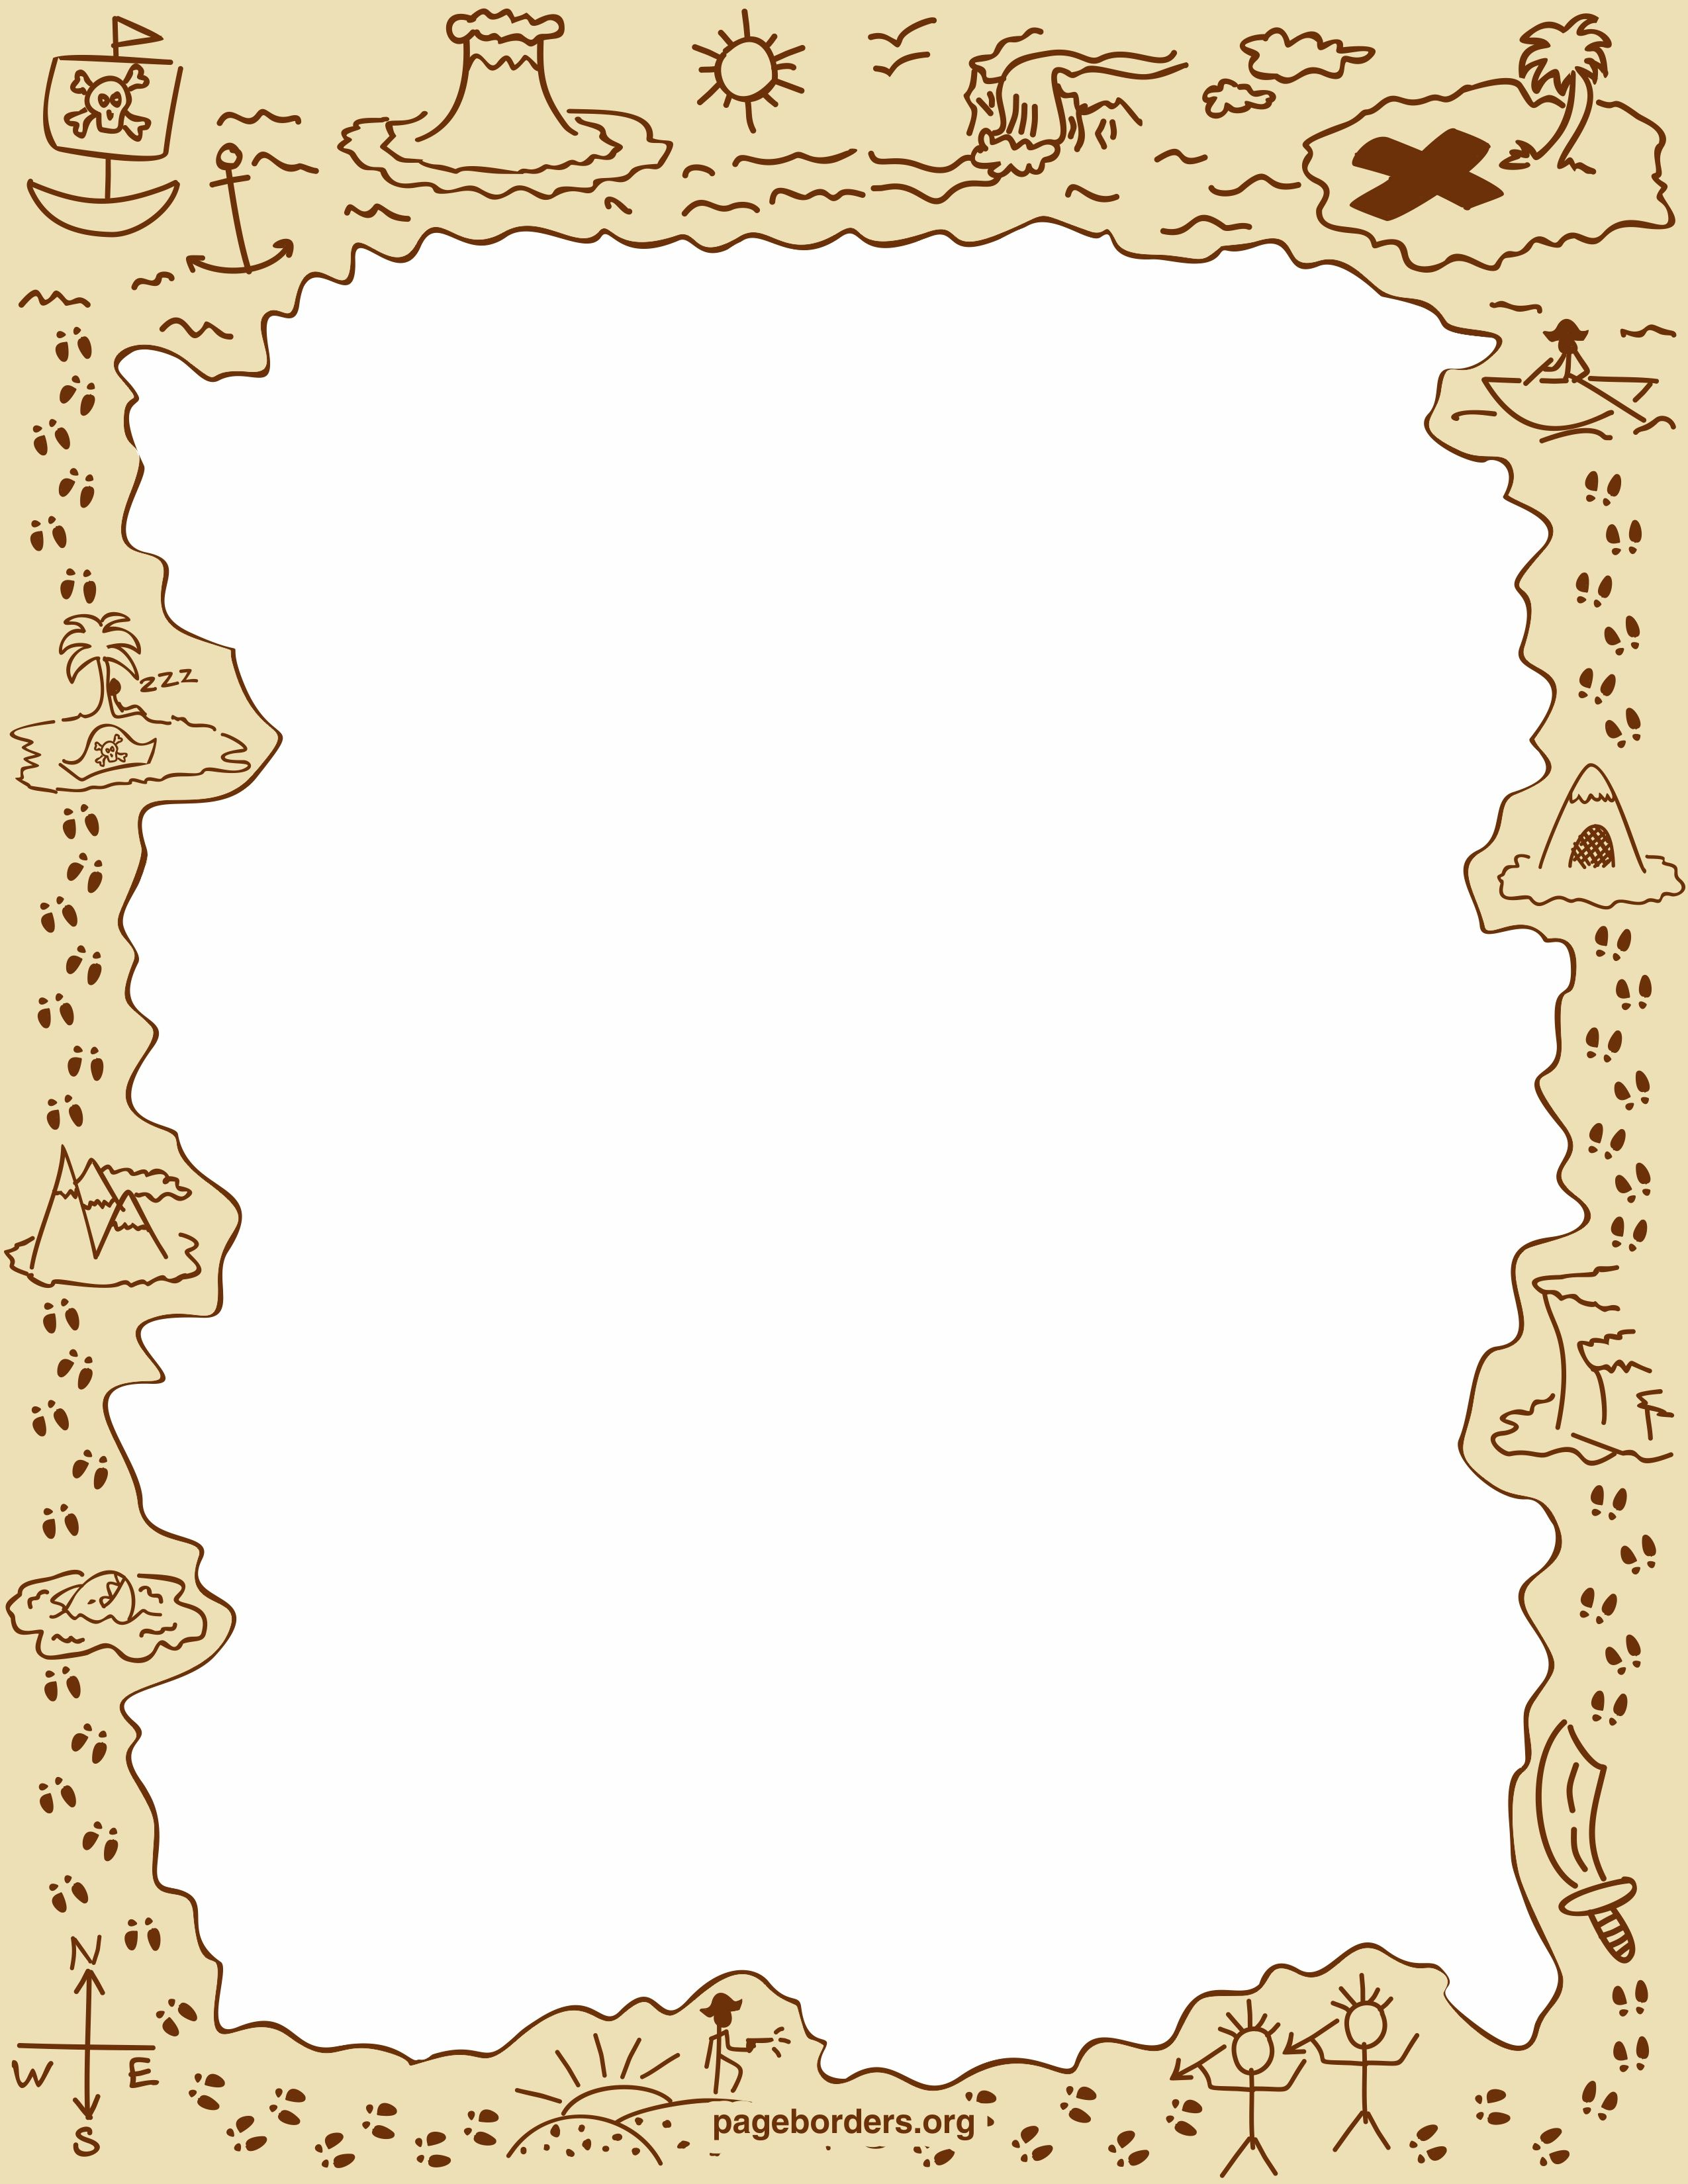 pirate-border-watermarked.jpg (2550×3300) | Blank pages | Pinterest ...